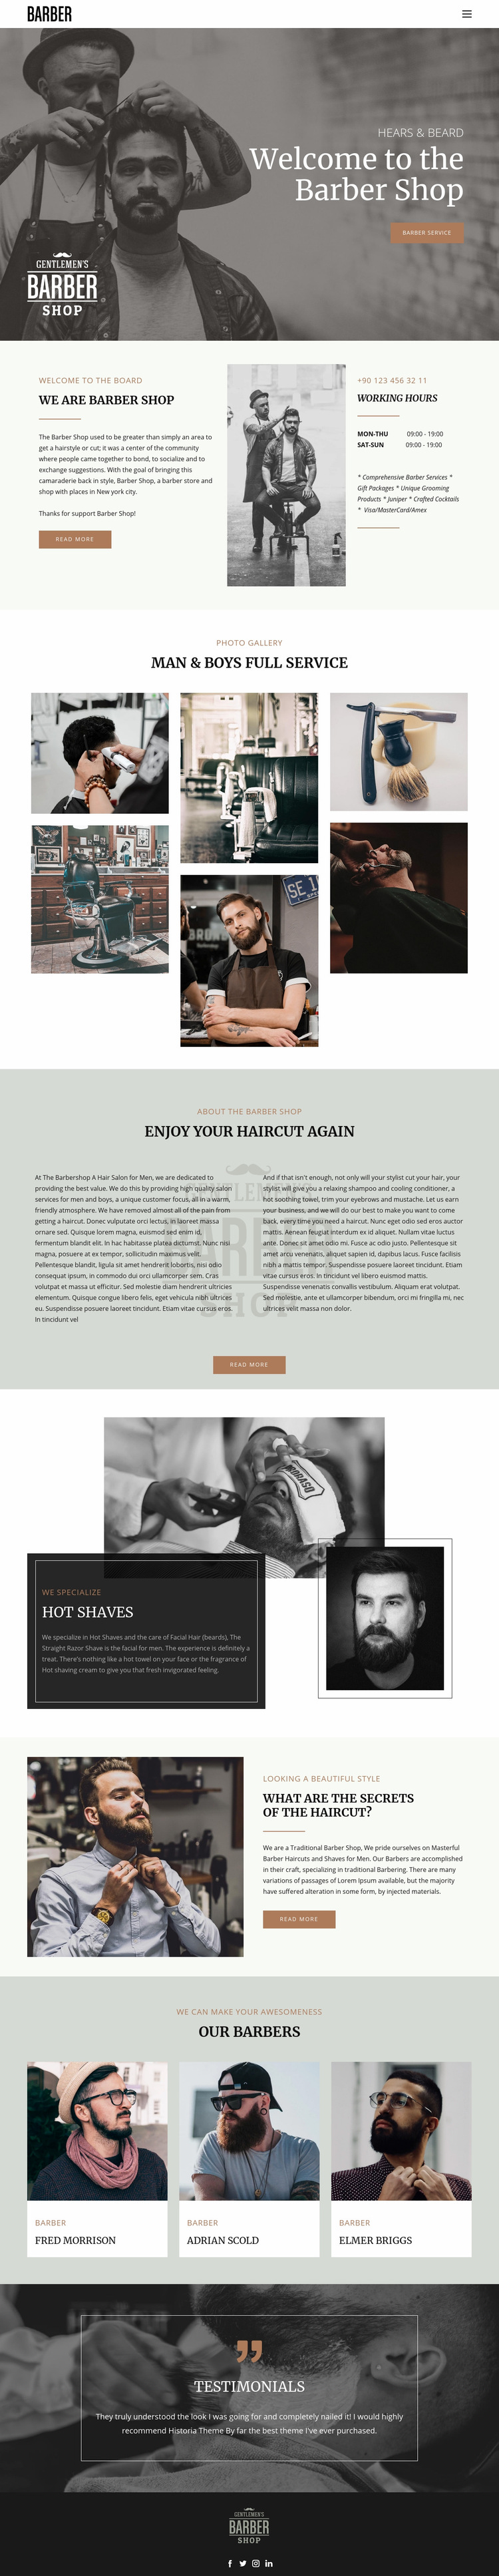 Quality haircuts and hairstyles  Web Page Design